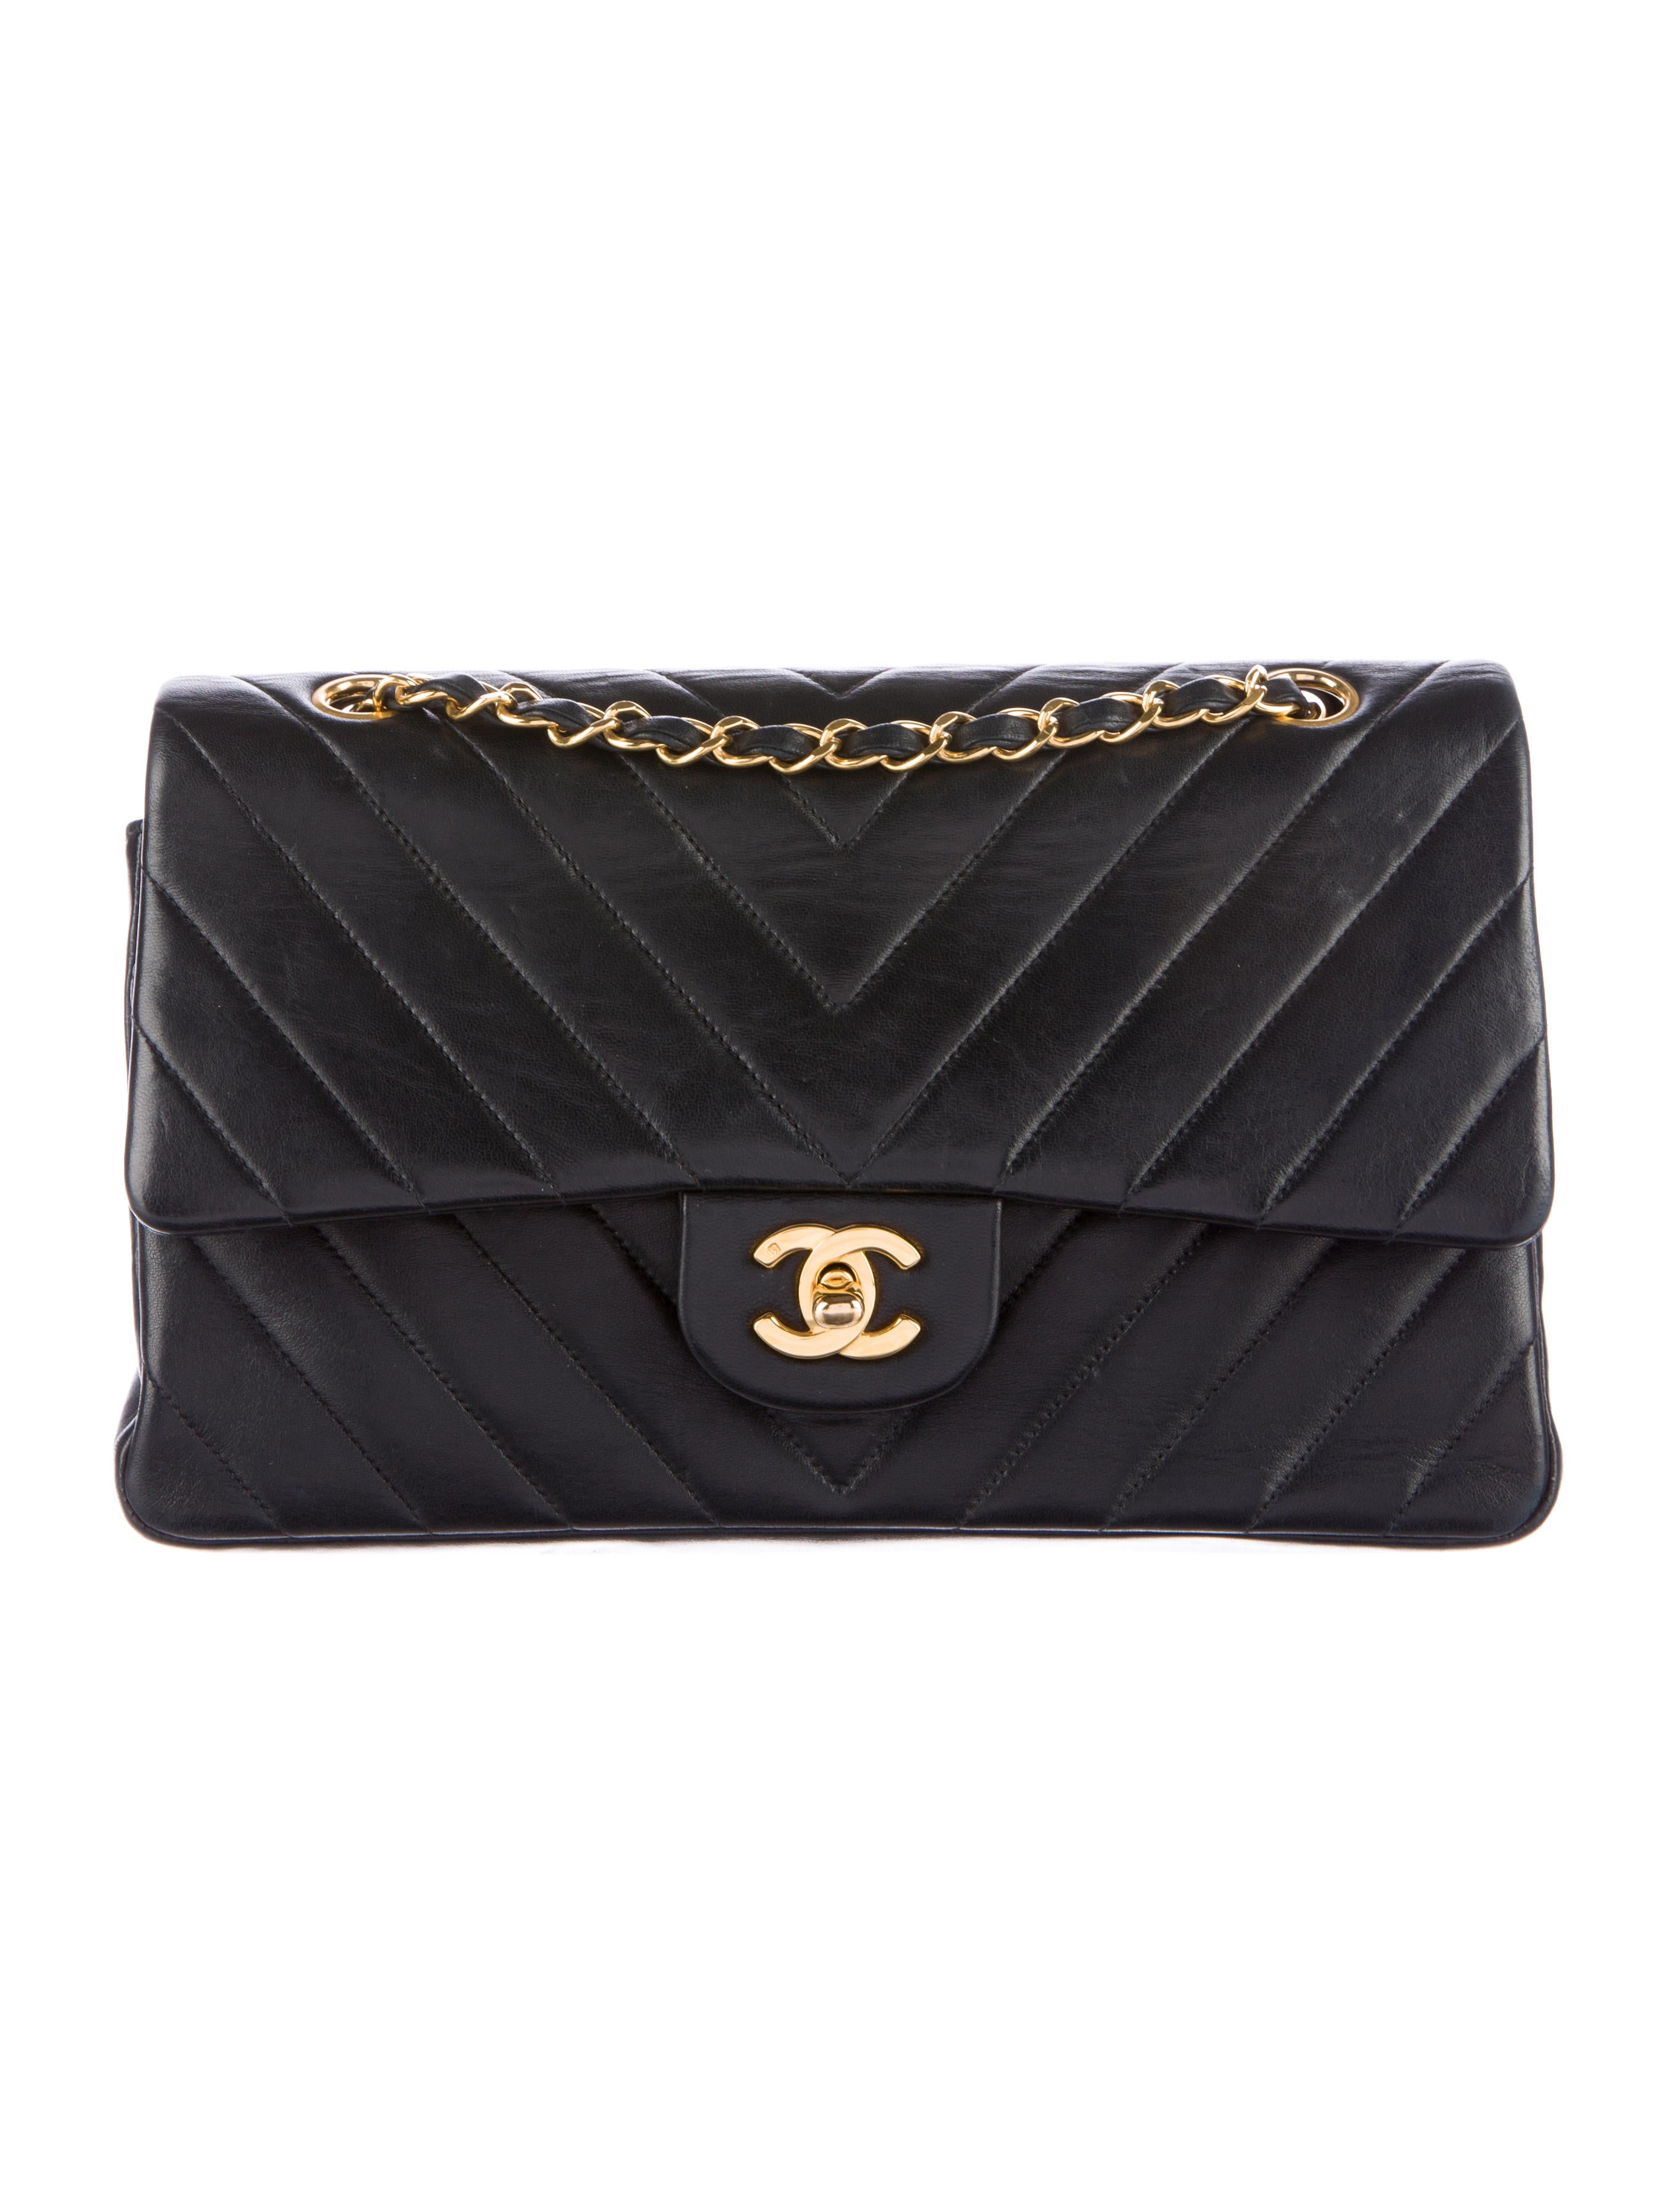 b0b681fff2c7 Chanel Chevron Medium Classic Double Flap Bag - Handbags - CHA131201 ...